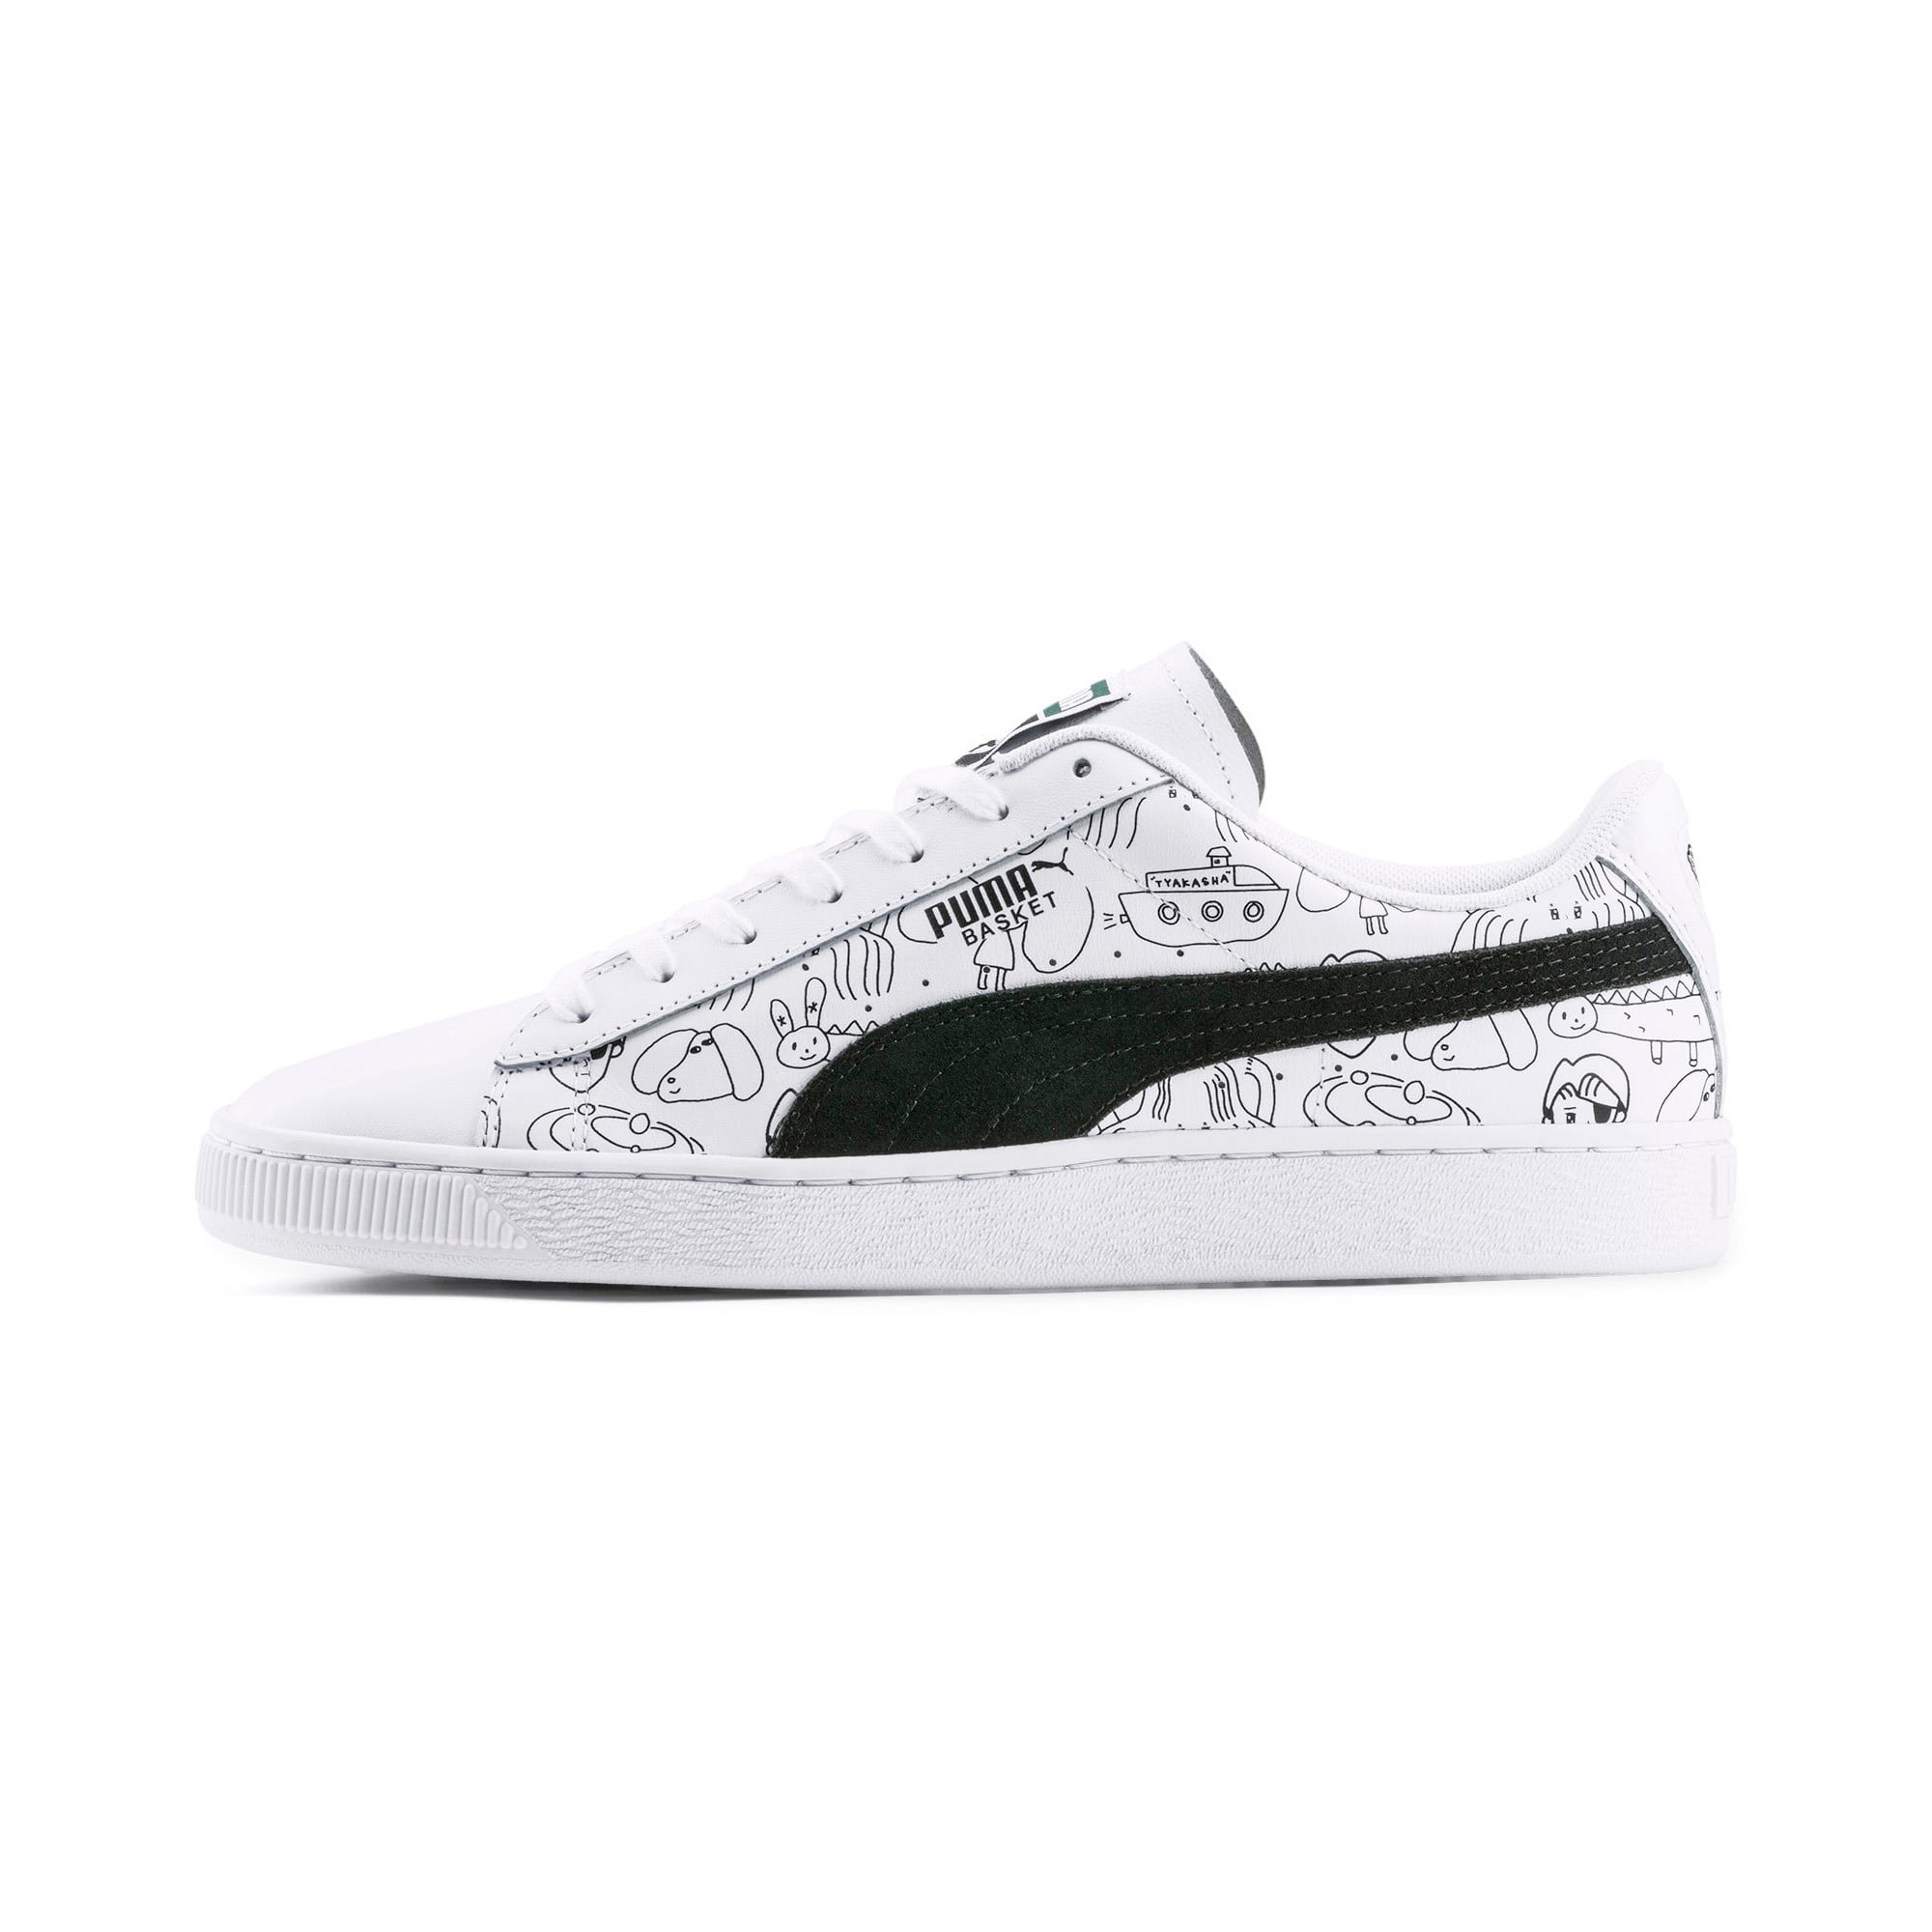 Thumbnail 1 of PUMA x TYAKASHA Basket Trainers, Puma White-Puma Black, medium